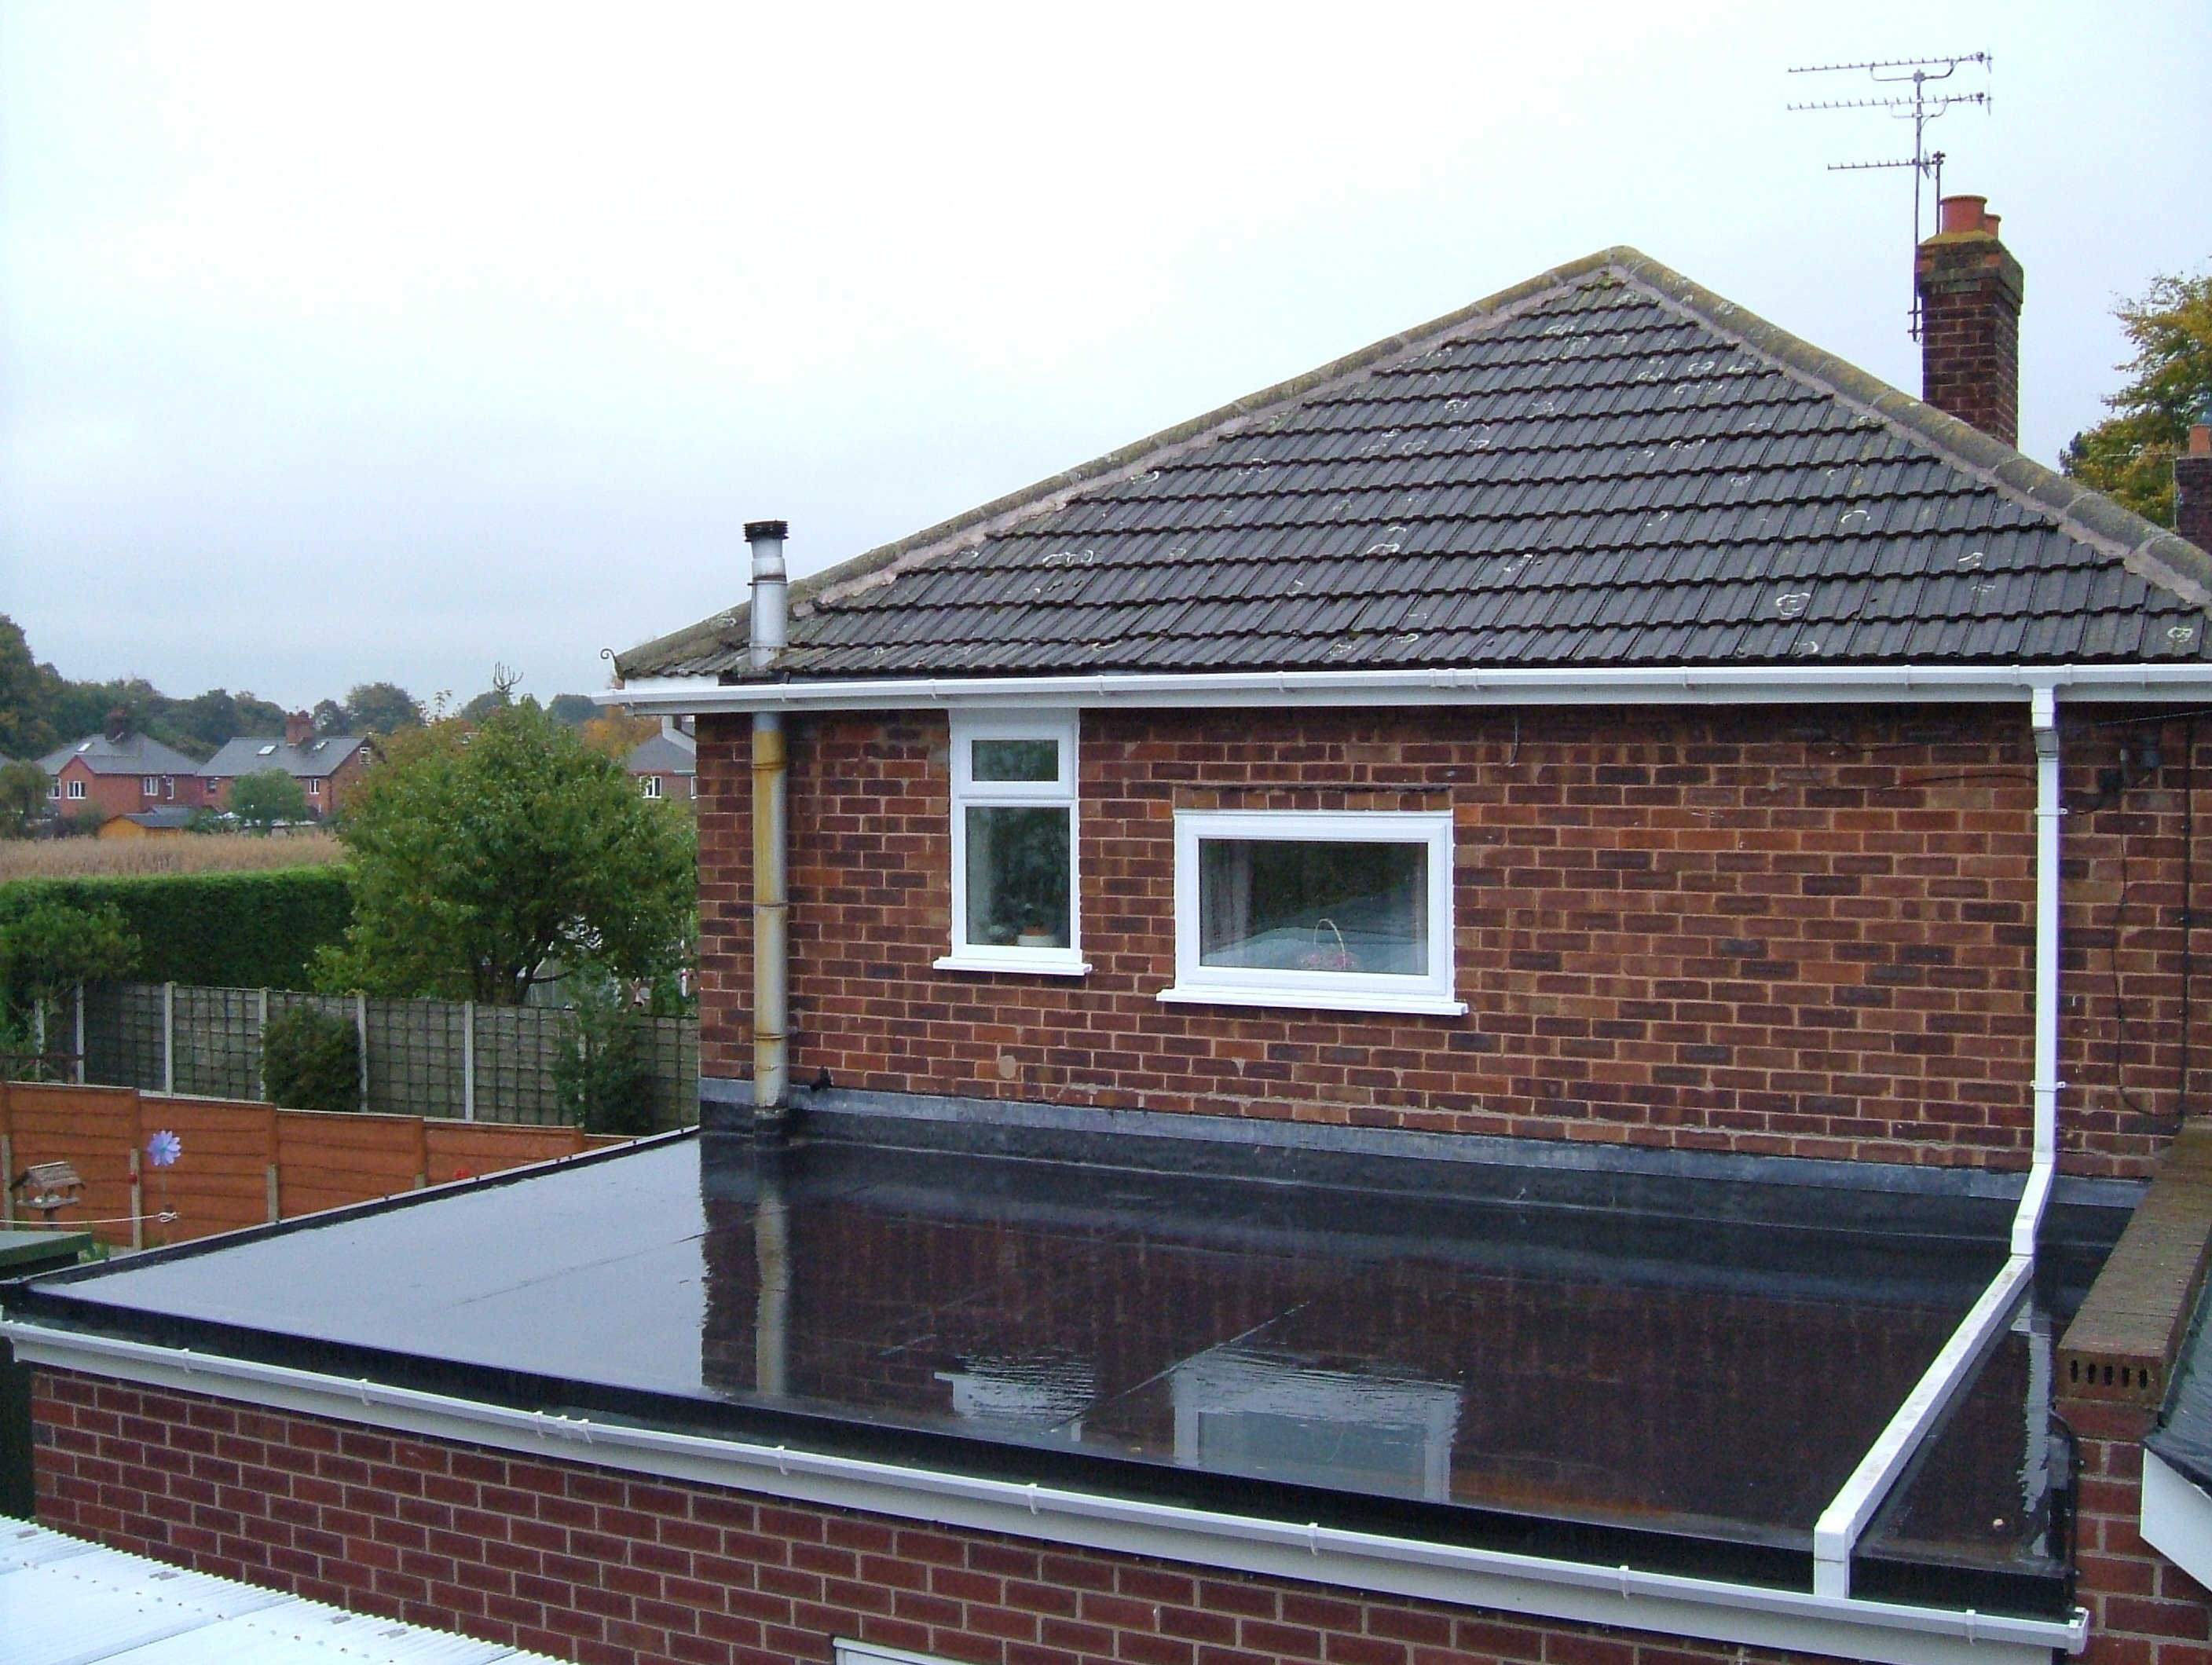 Home Commercial Grade Flat Roof Rubber Roofing Systems